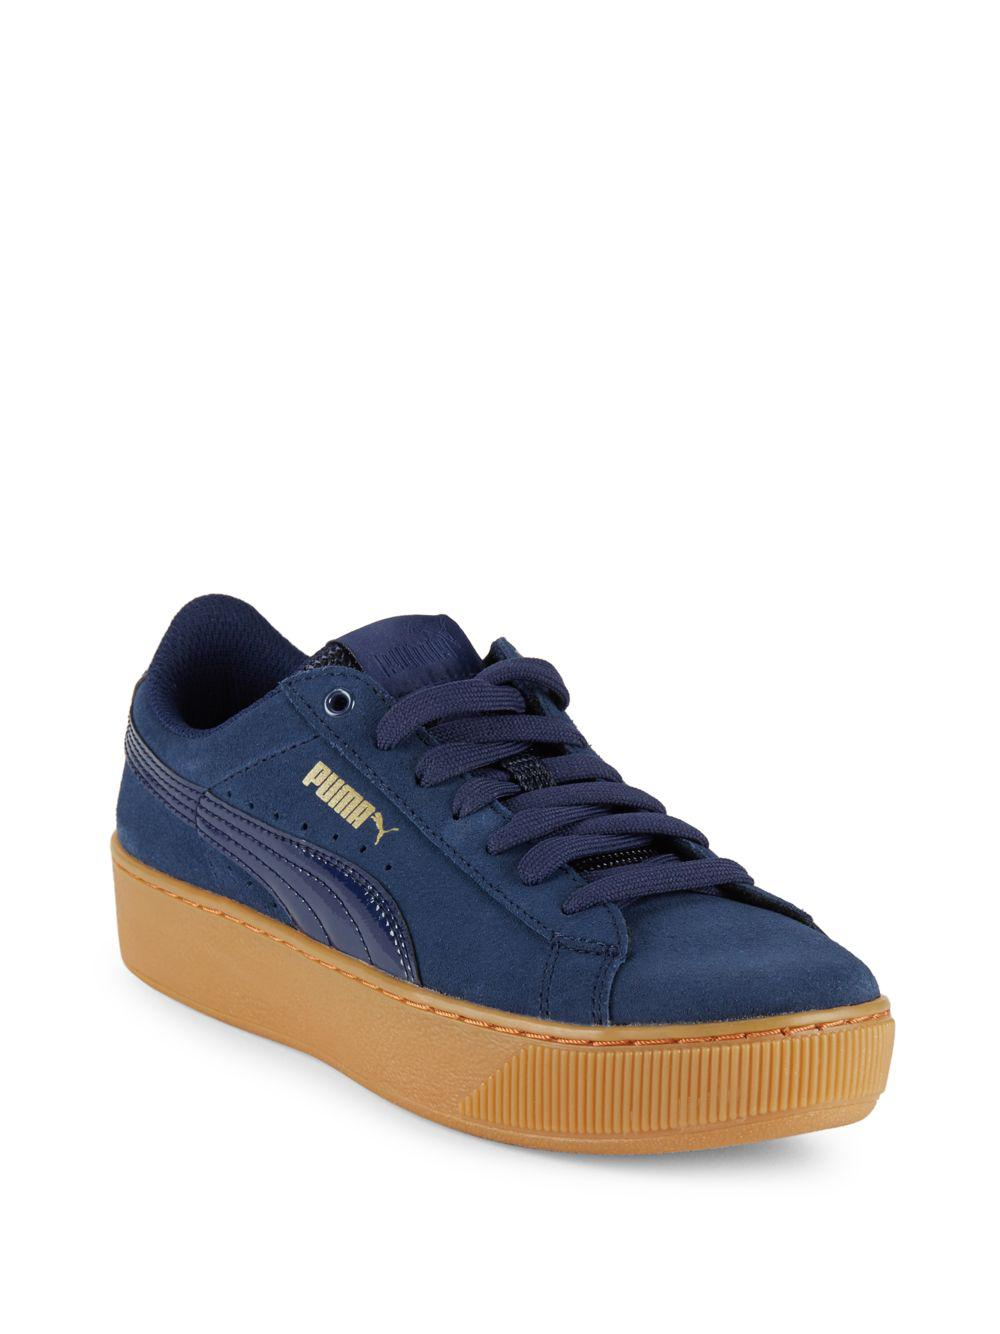 b832bff9441 Lyst - PUMA Vikky Leather-blend Lace-up Sneakers in Blue